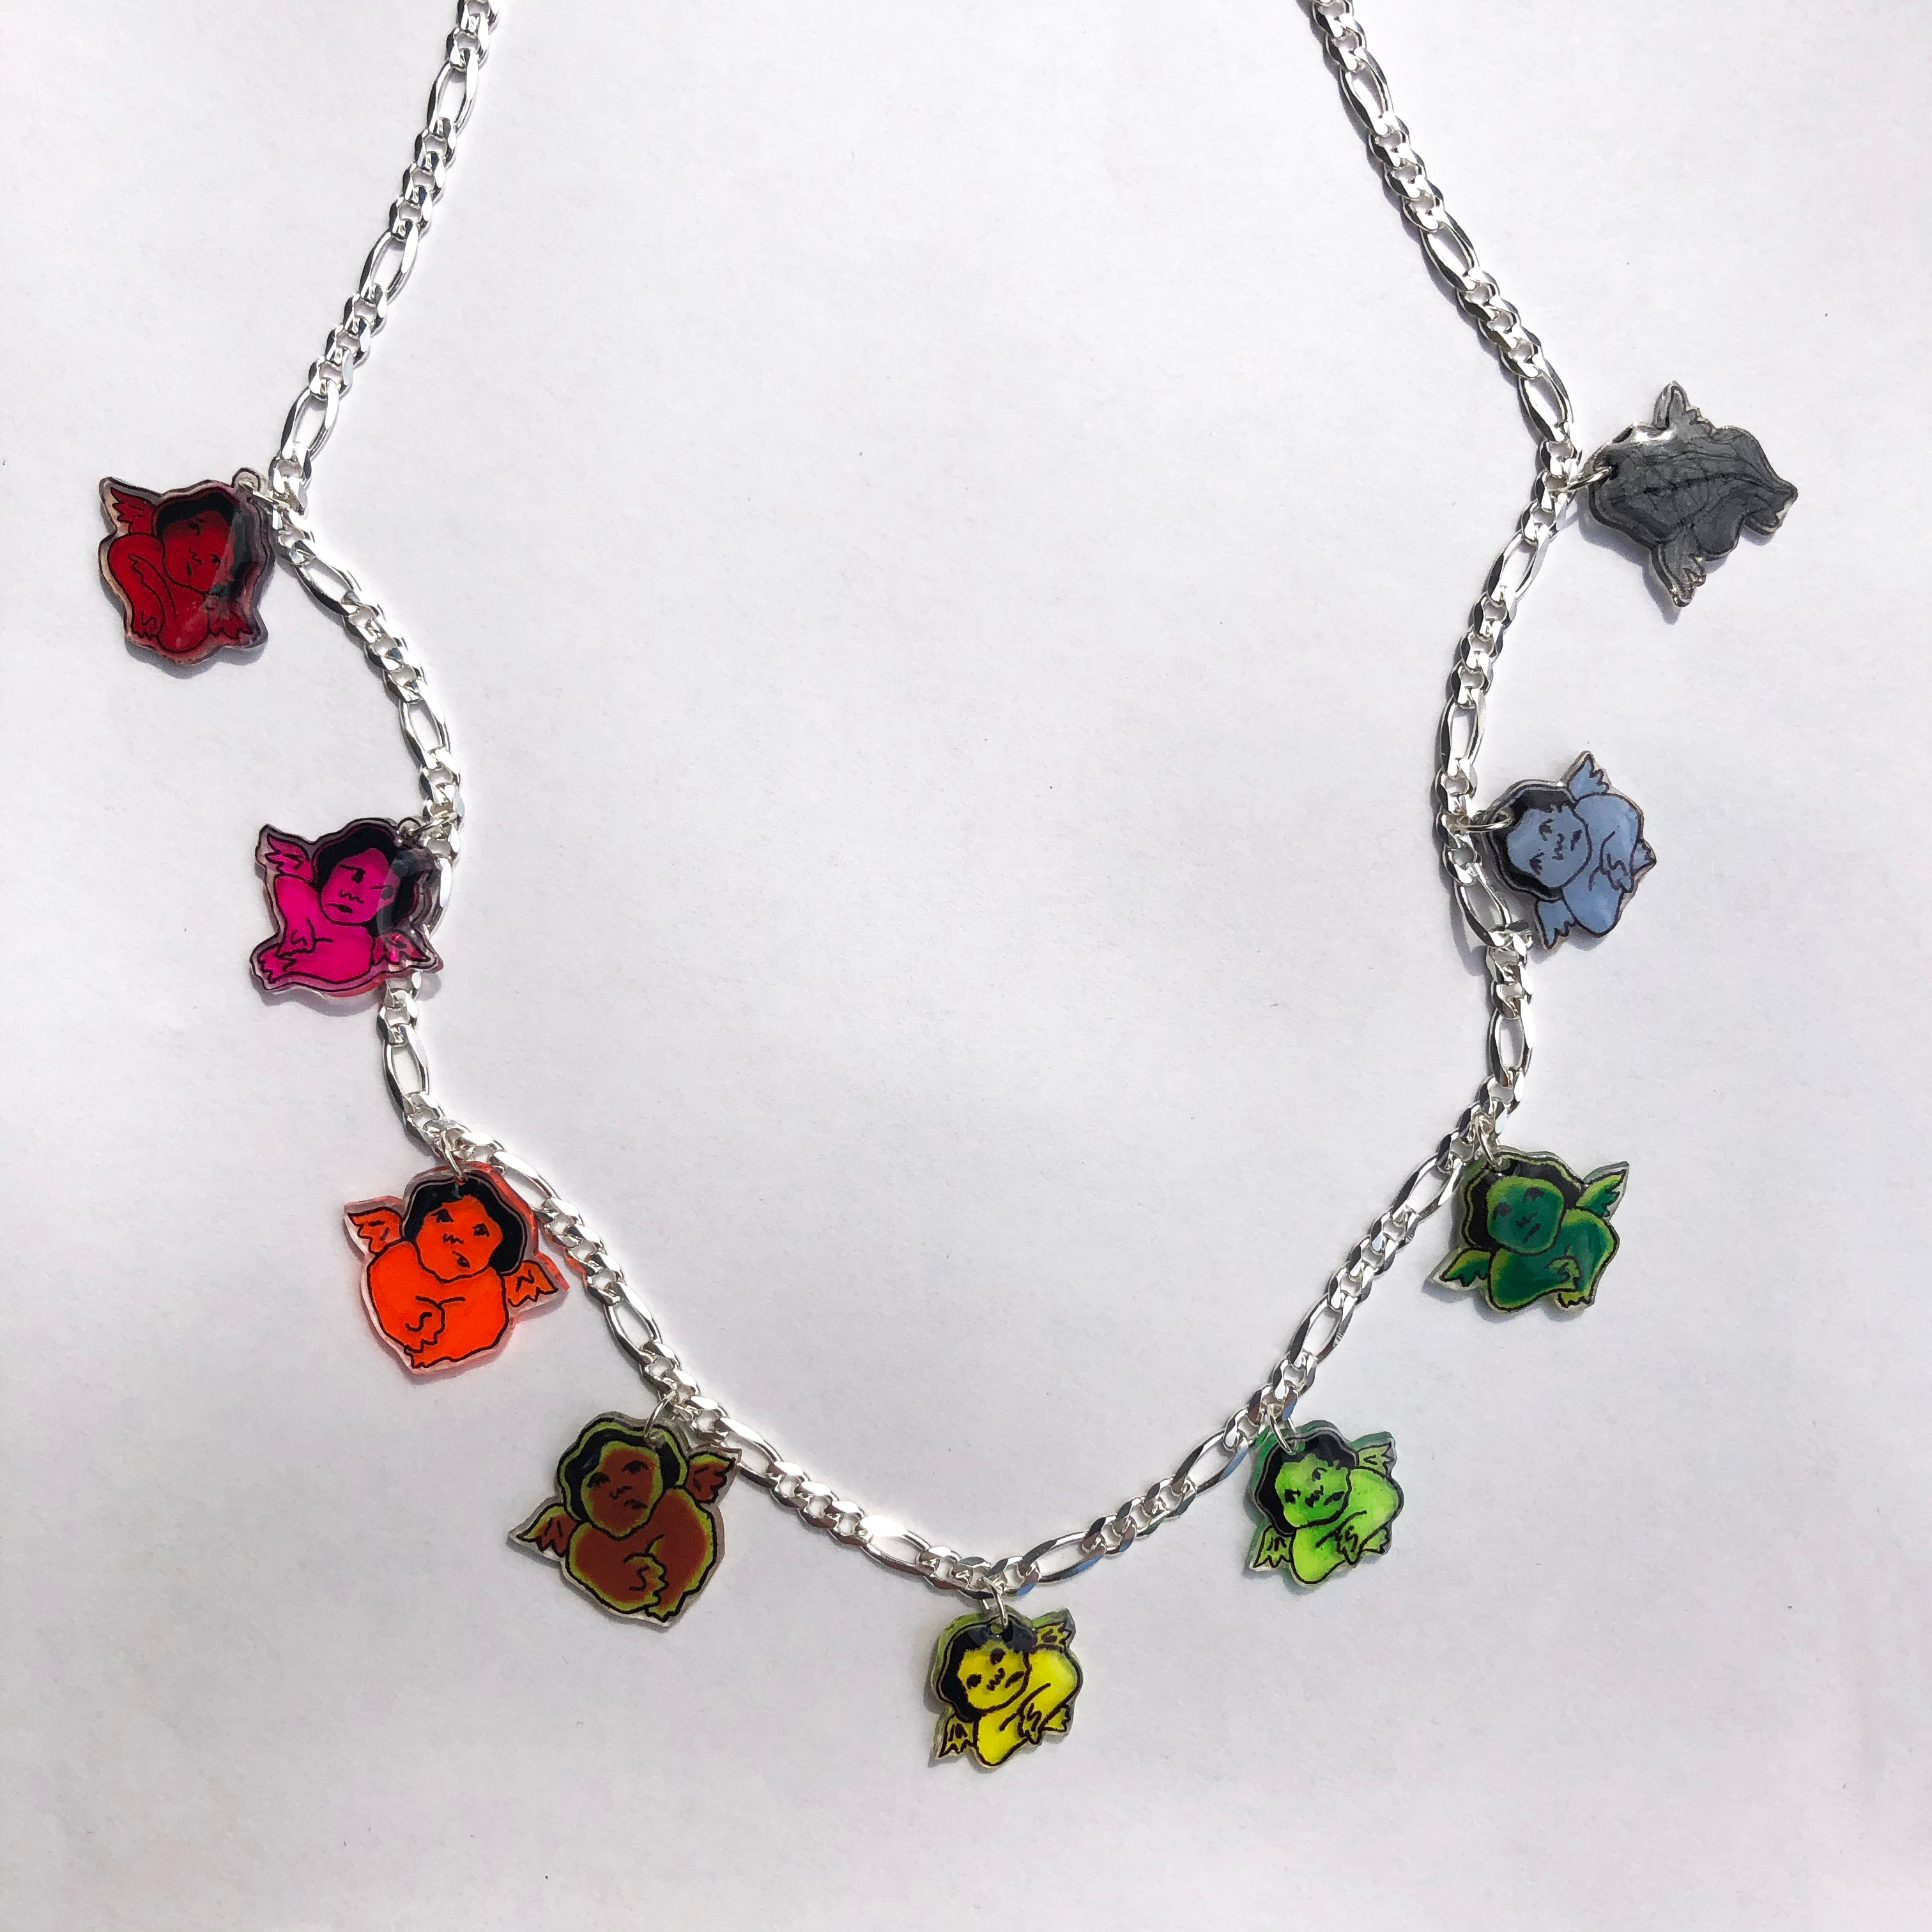 RAINBOW_ANGELS_NECKLACE